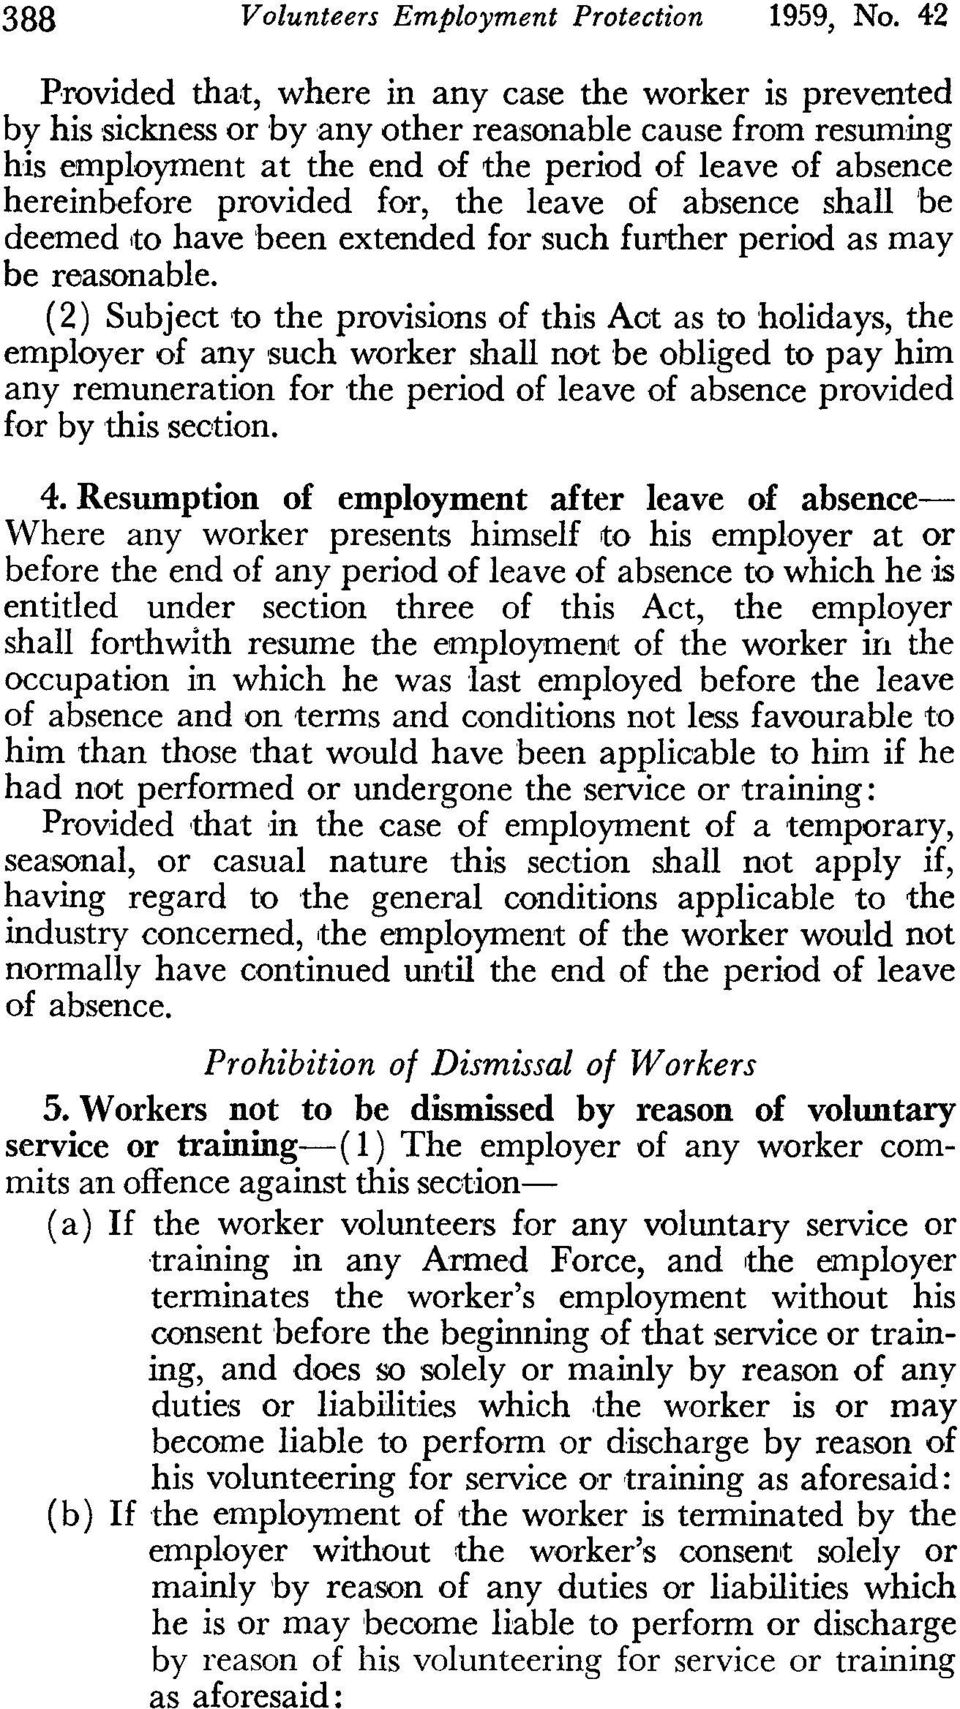 provided for, the leave of absence shall be deemed,to have been extended for such further period as may be reasonable.